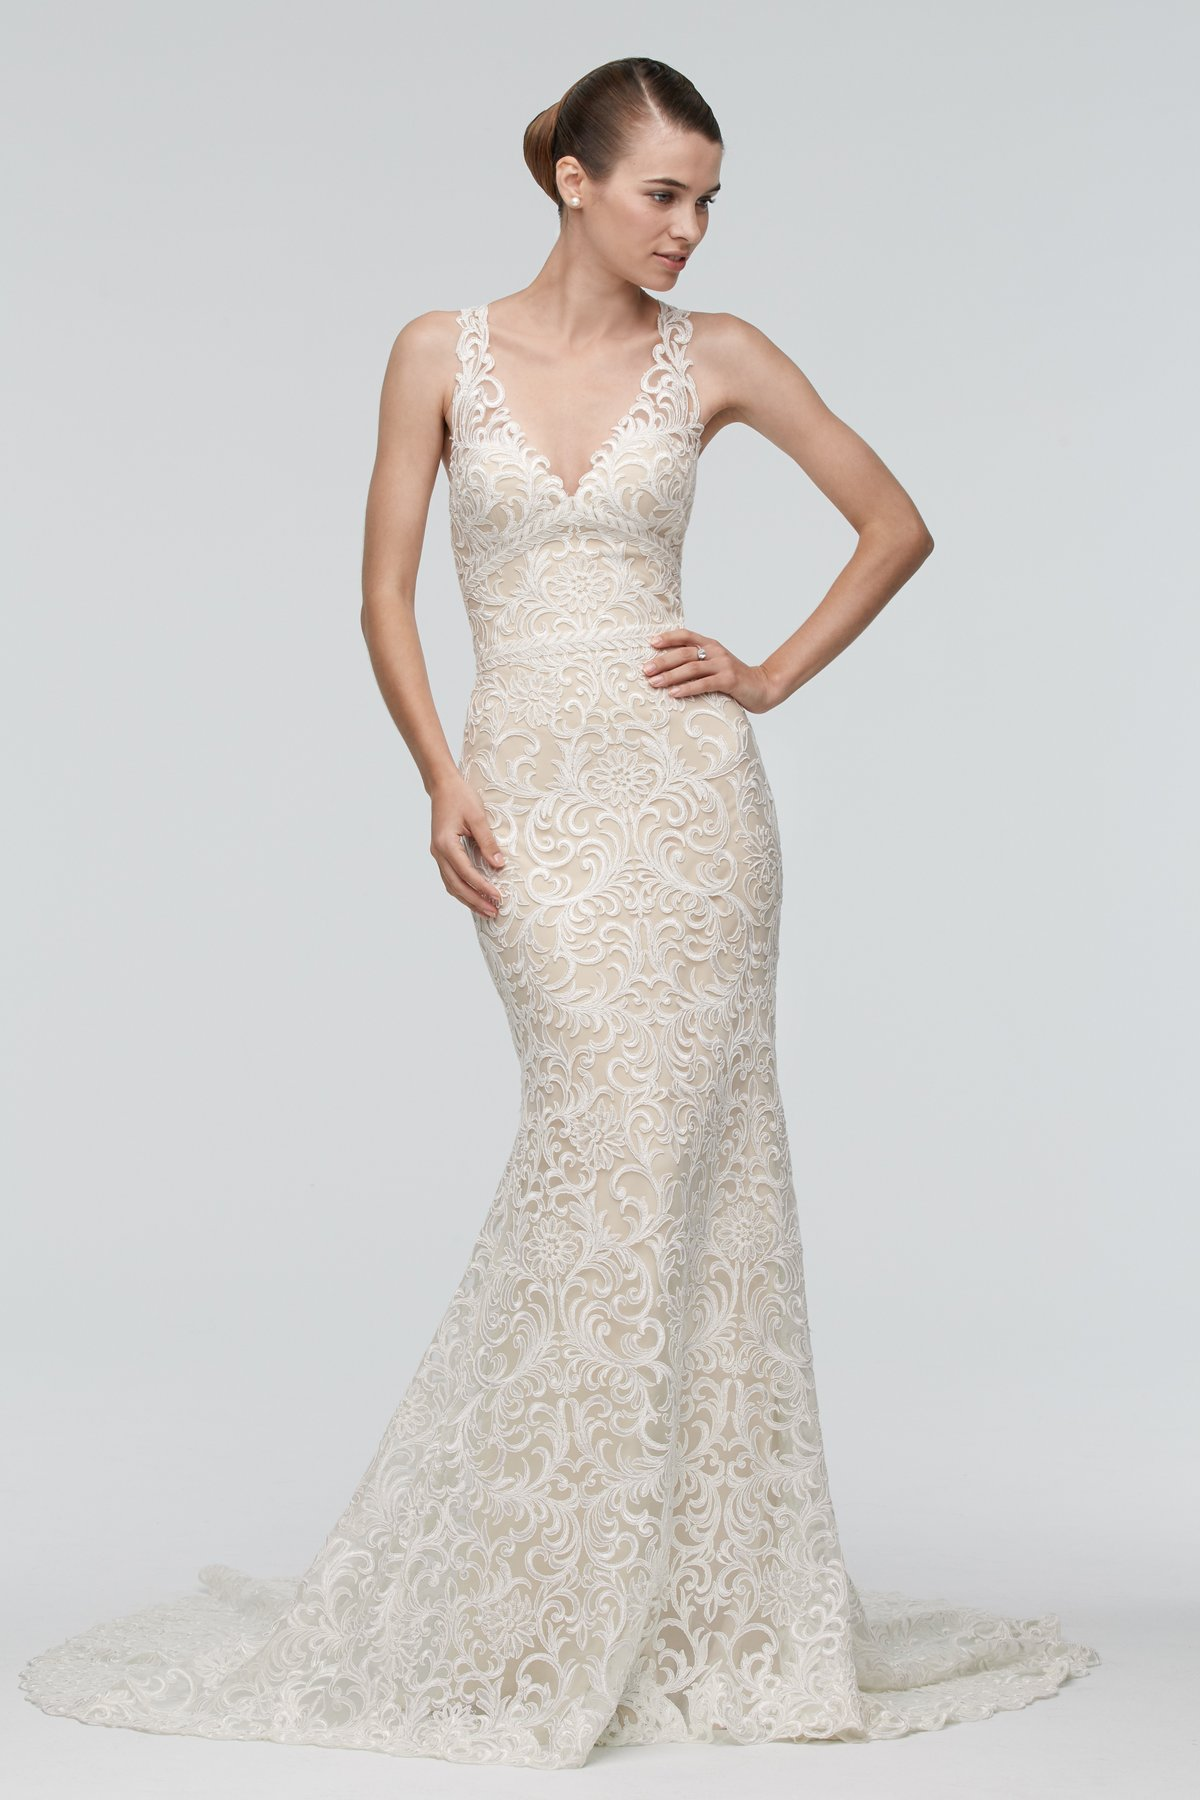 Best Wedding Dresses Dallas